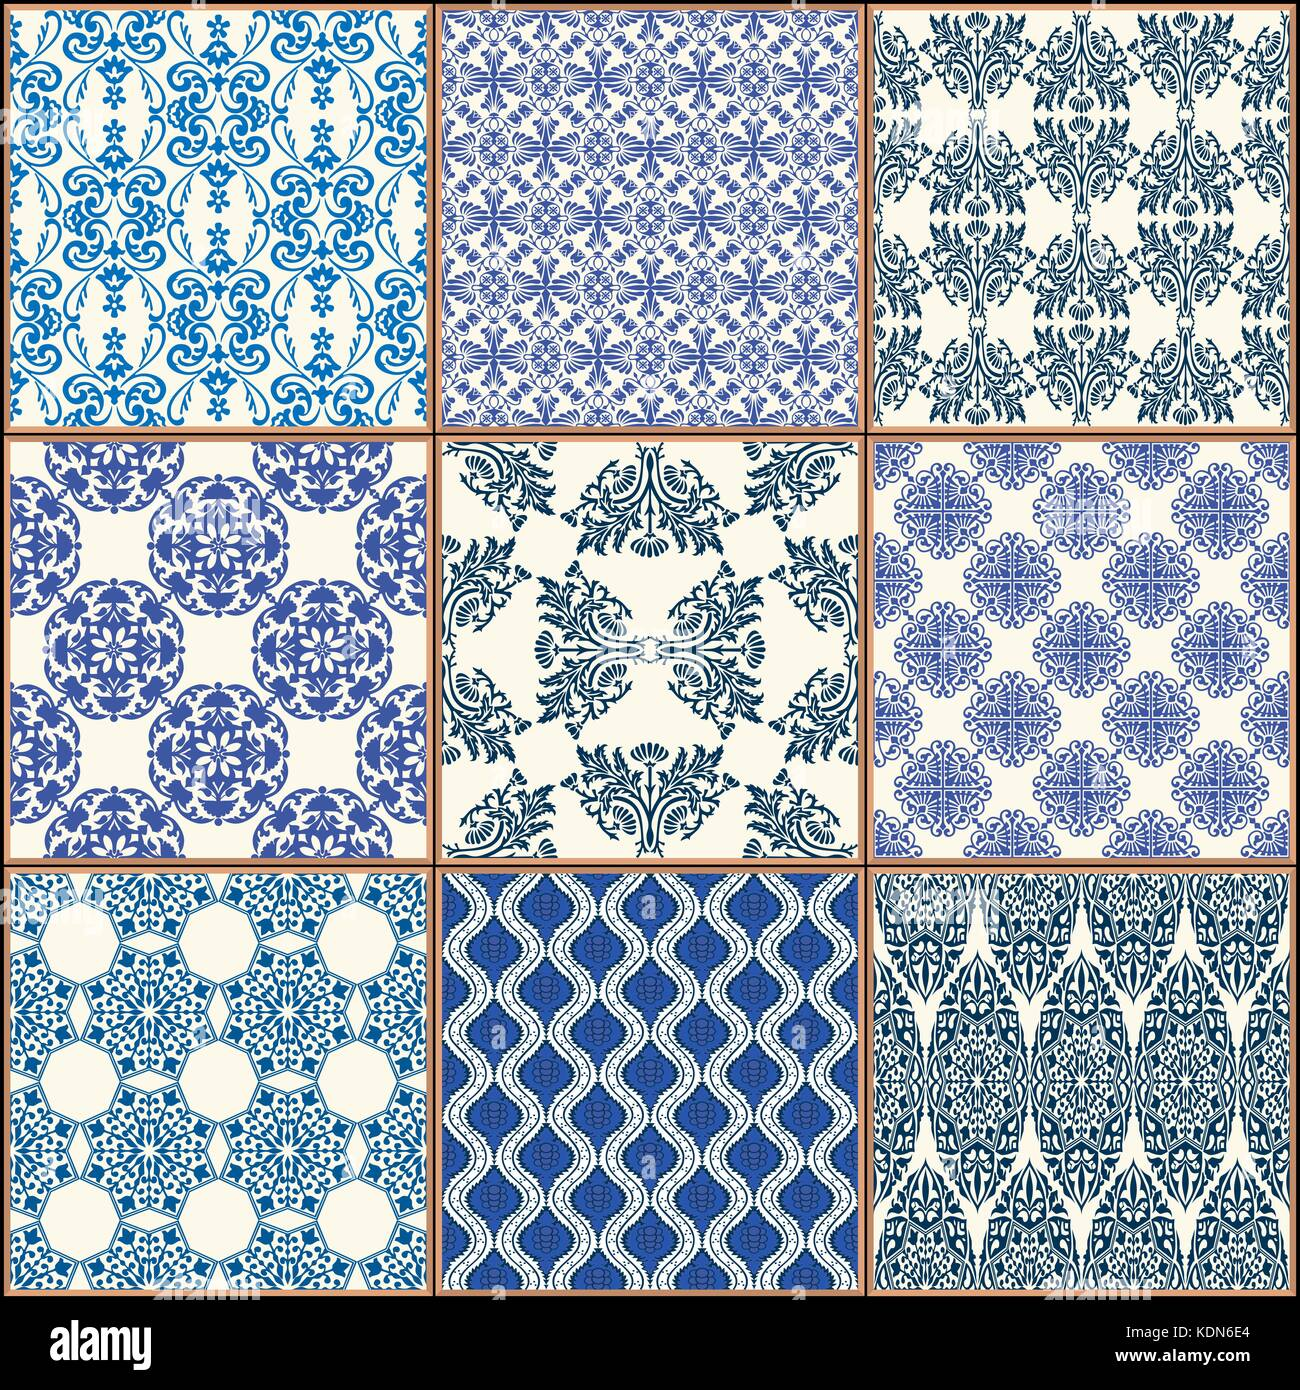 Indigo Blue Tiles Floor Ornament Collection. Gorgeous Seamless Patchwork Pattern from Colorful Traditional Painted - Stock Vector